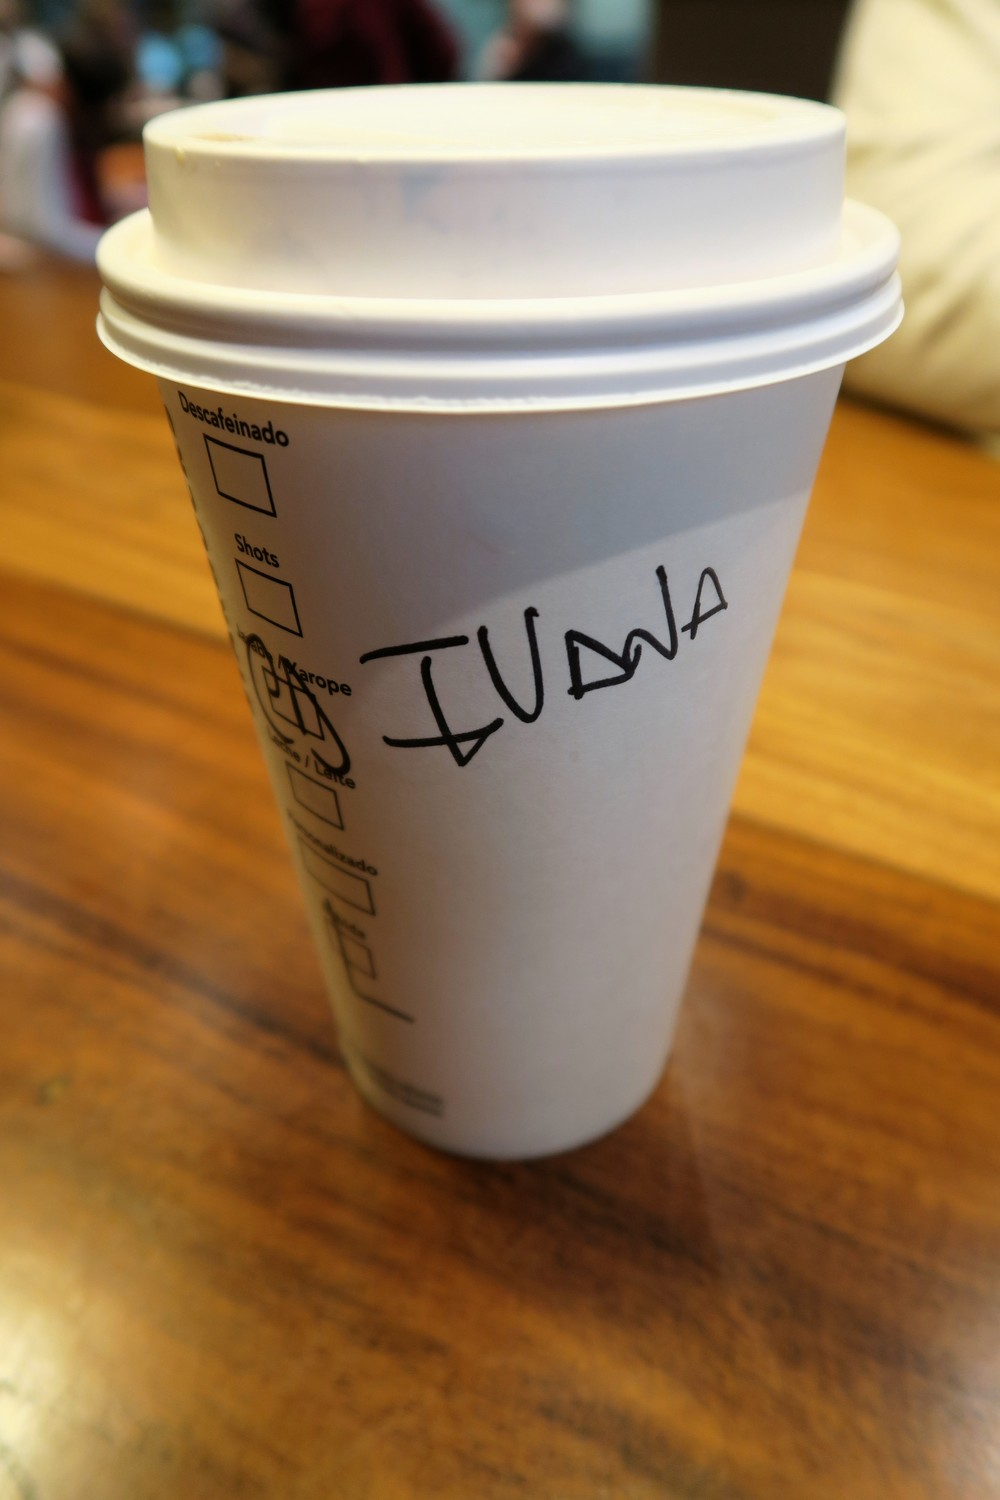 Starbucks always gets my name wrong - Buenos Aires